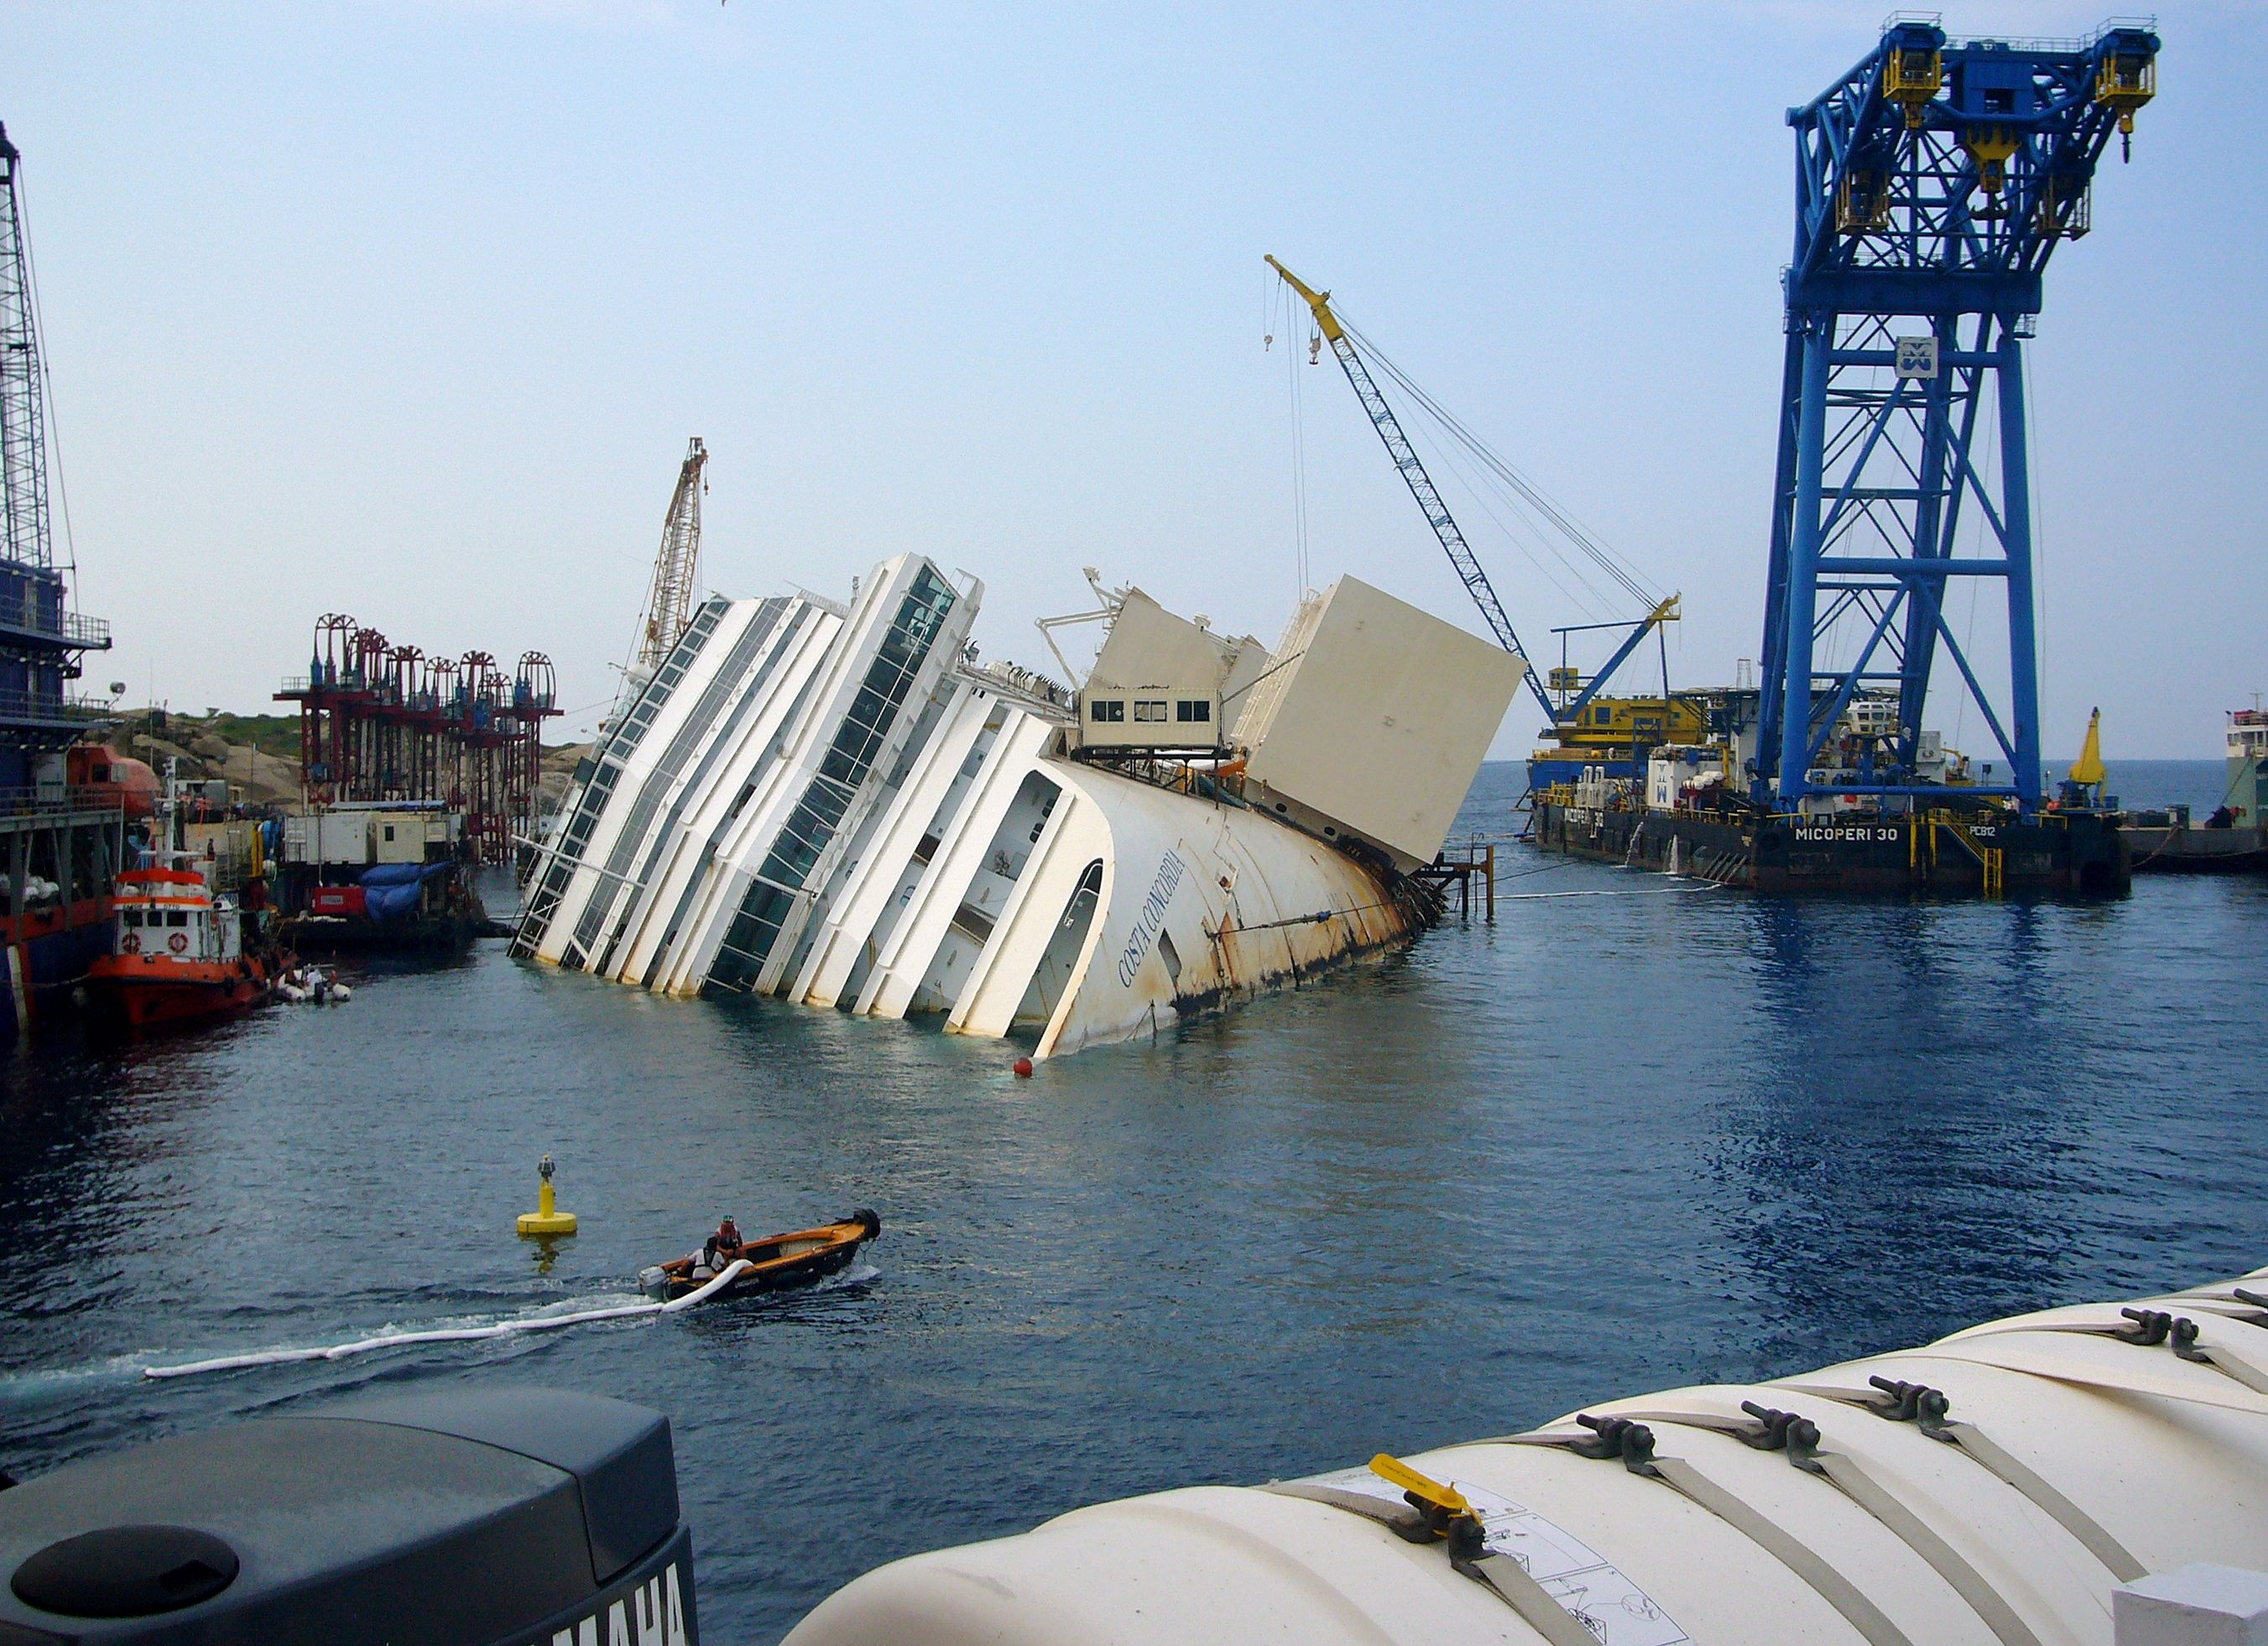 The Italian Cruise Ship Costa Concordia Capsized And Sank After Striking An Underwater Rock ...